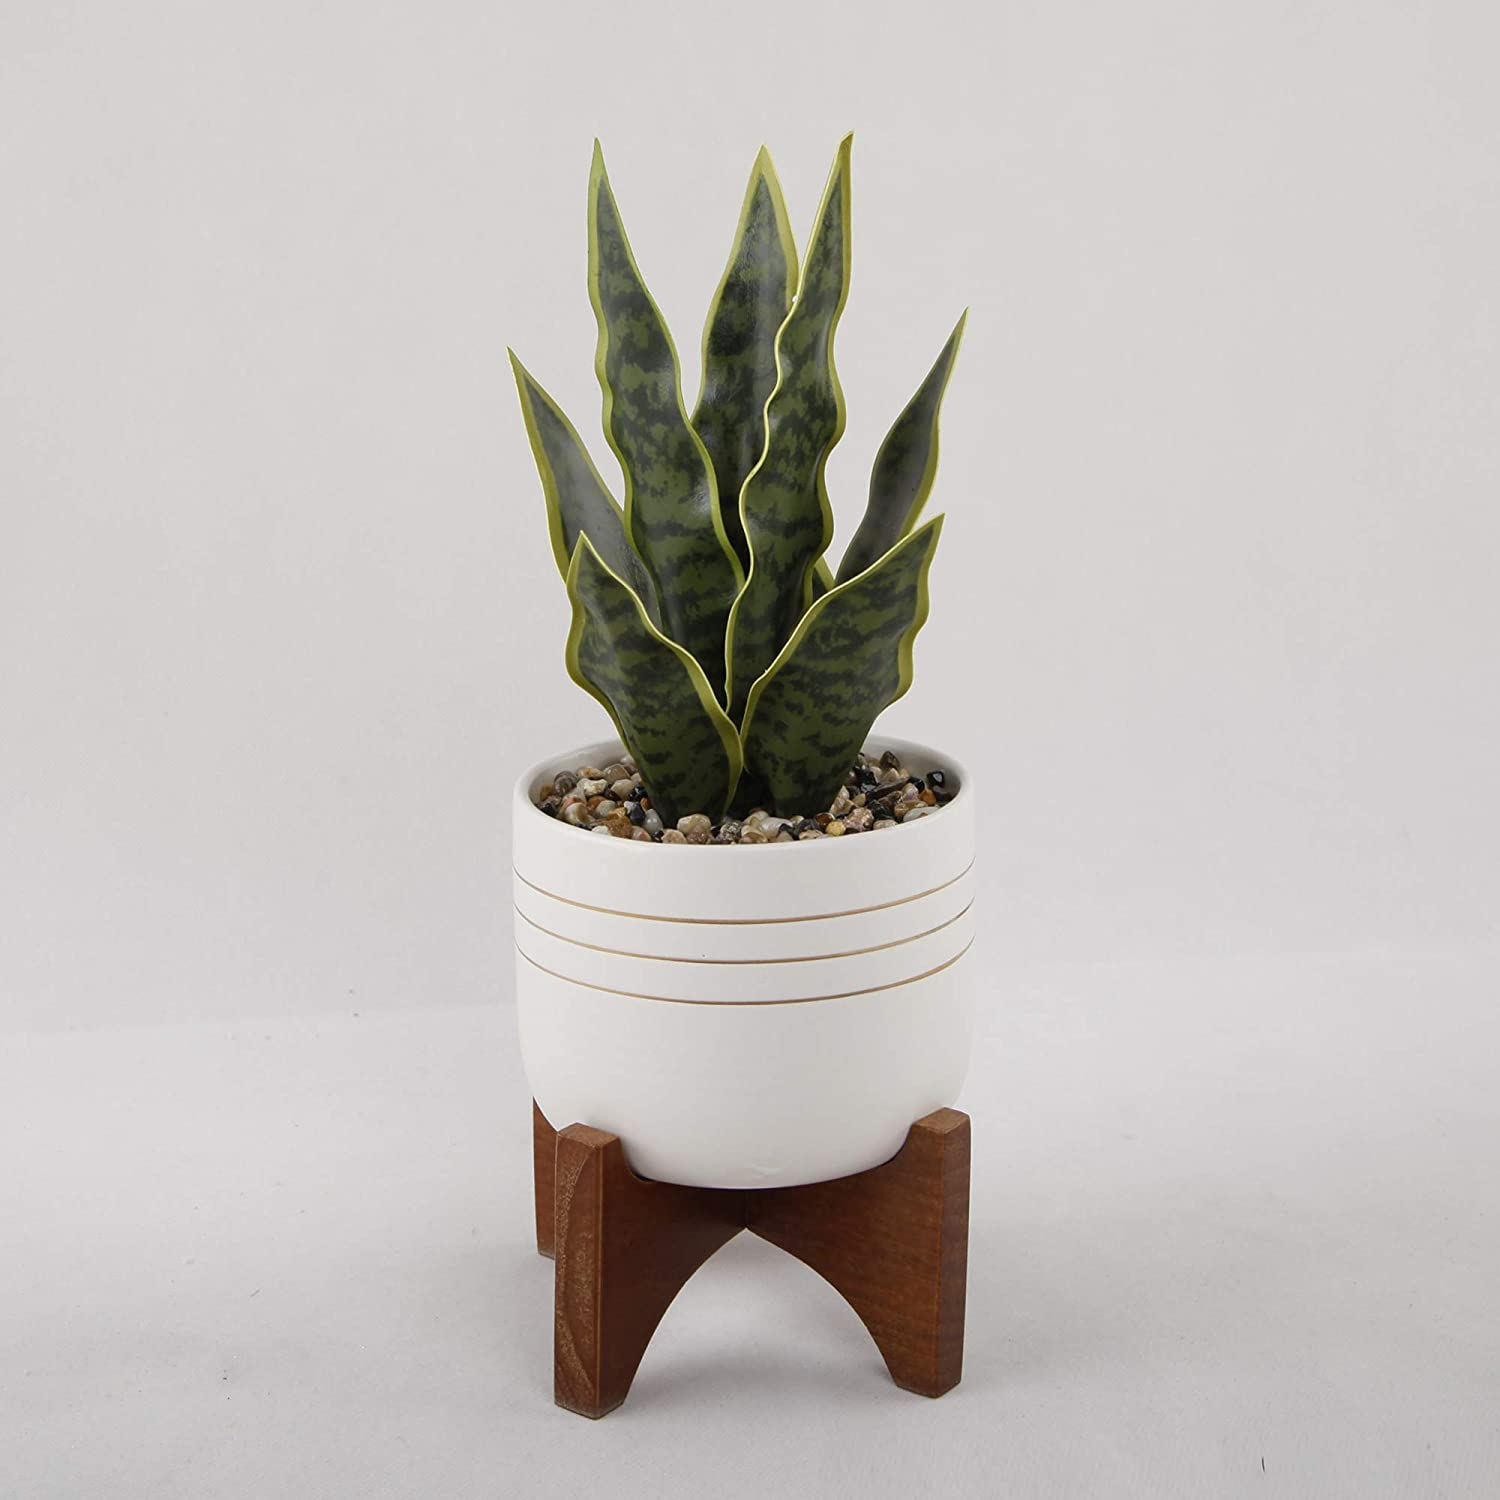 Artificial Snake Plant in Midcentury Modern Pot, Faux Succulent for Home Decor, Perfect Houseplant for Desktop, Artificial Succulent for Boho, Farmhouse, Hygge Decor